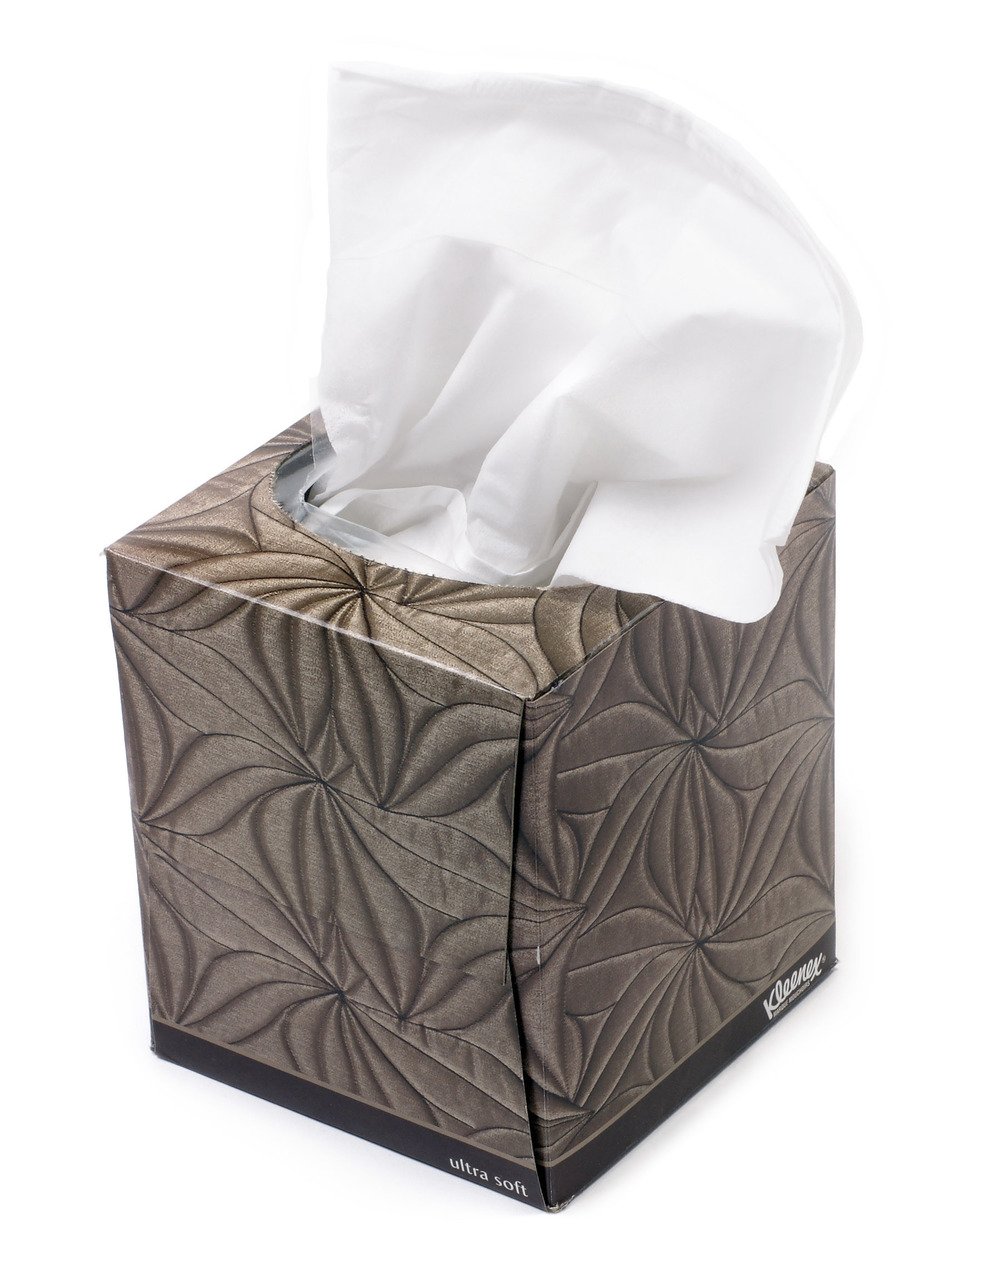 Kleenex (Source: wikipedia.org)